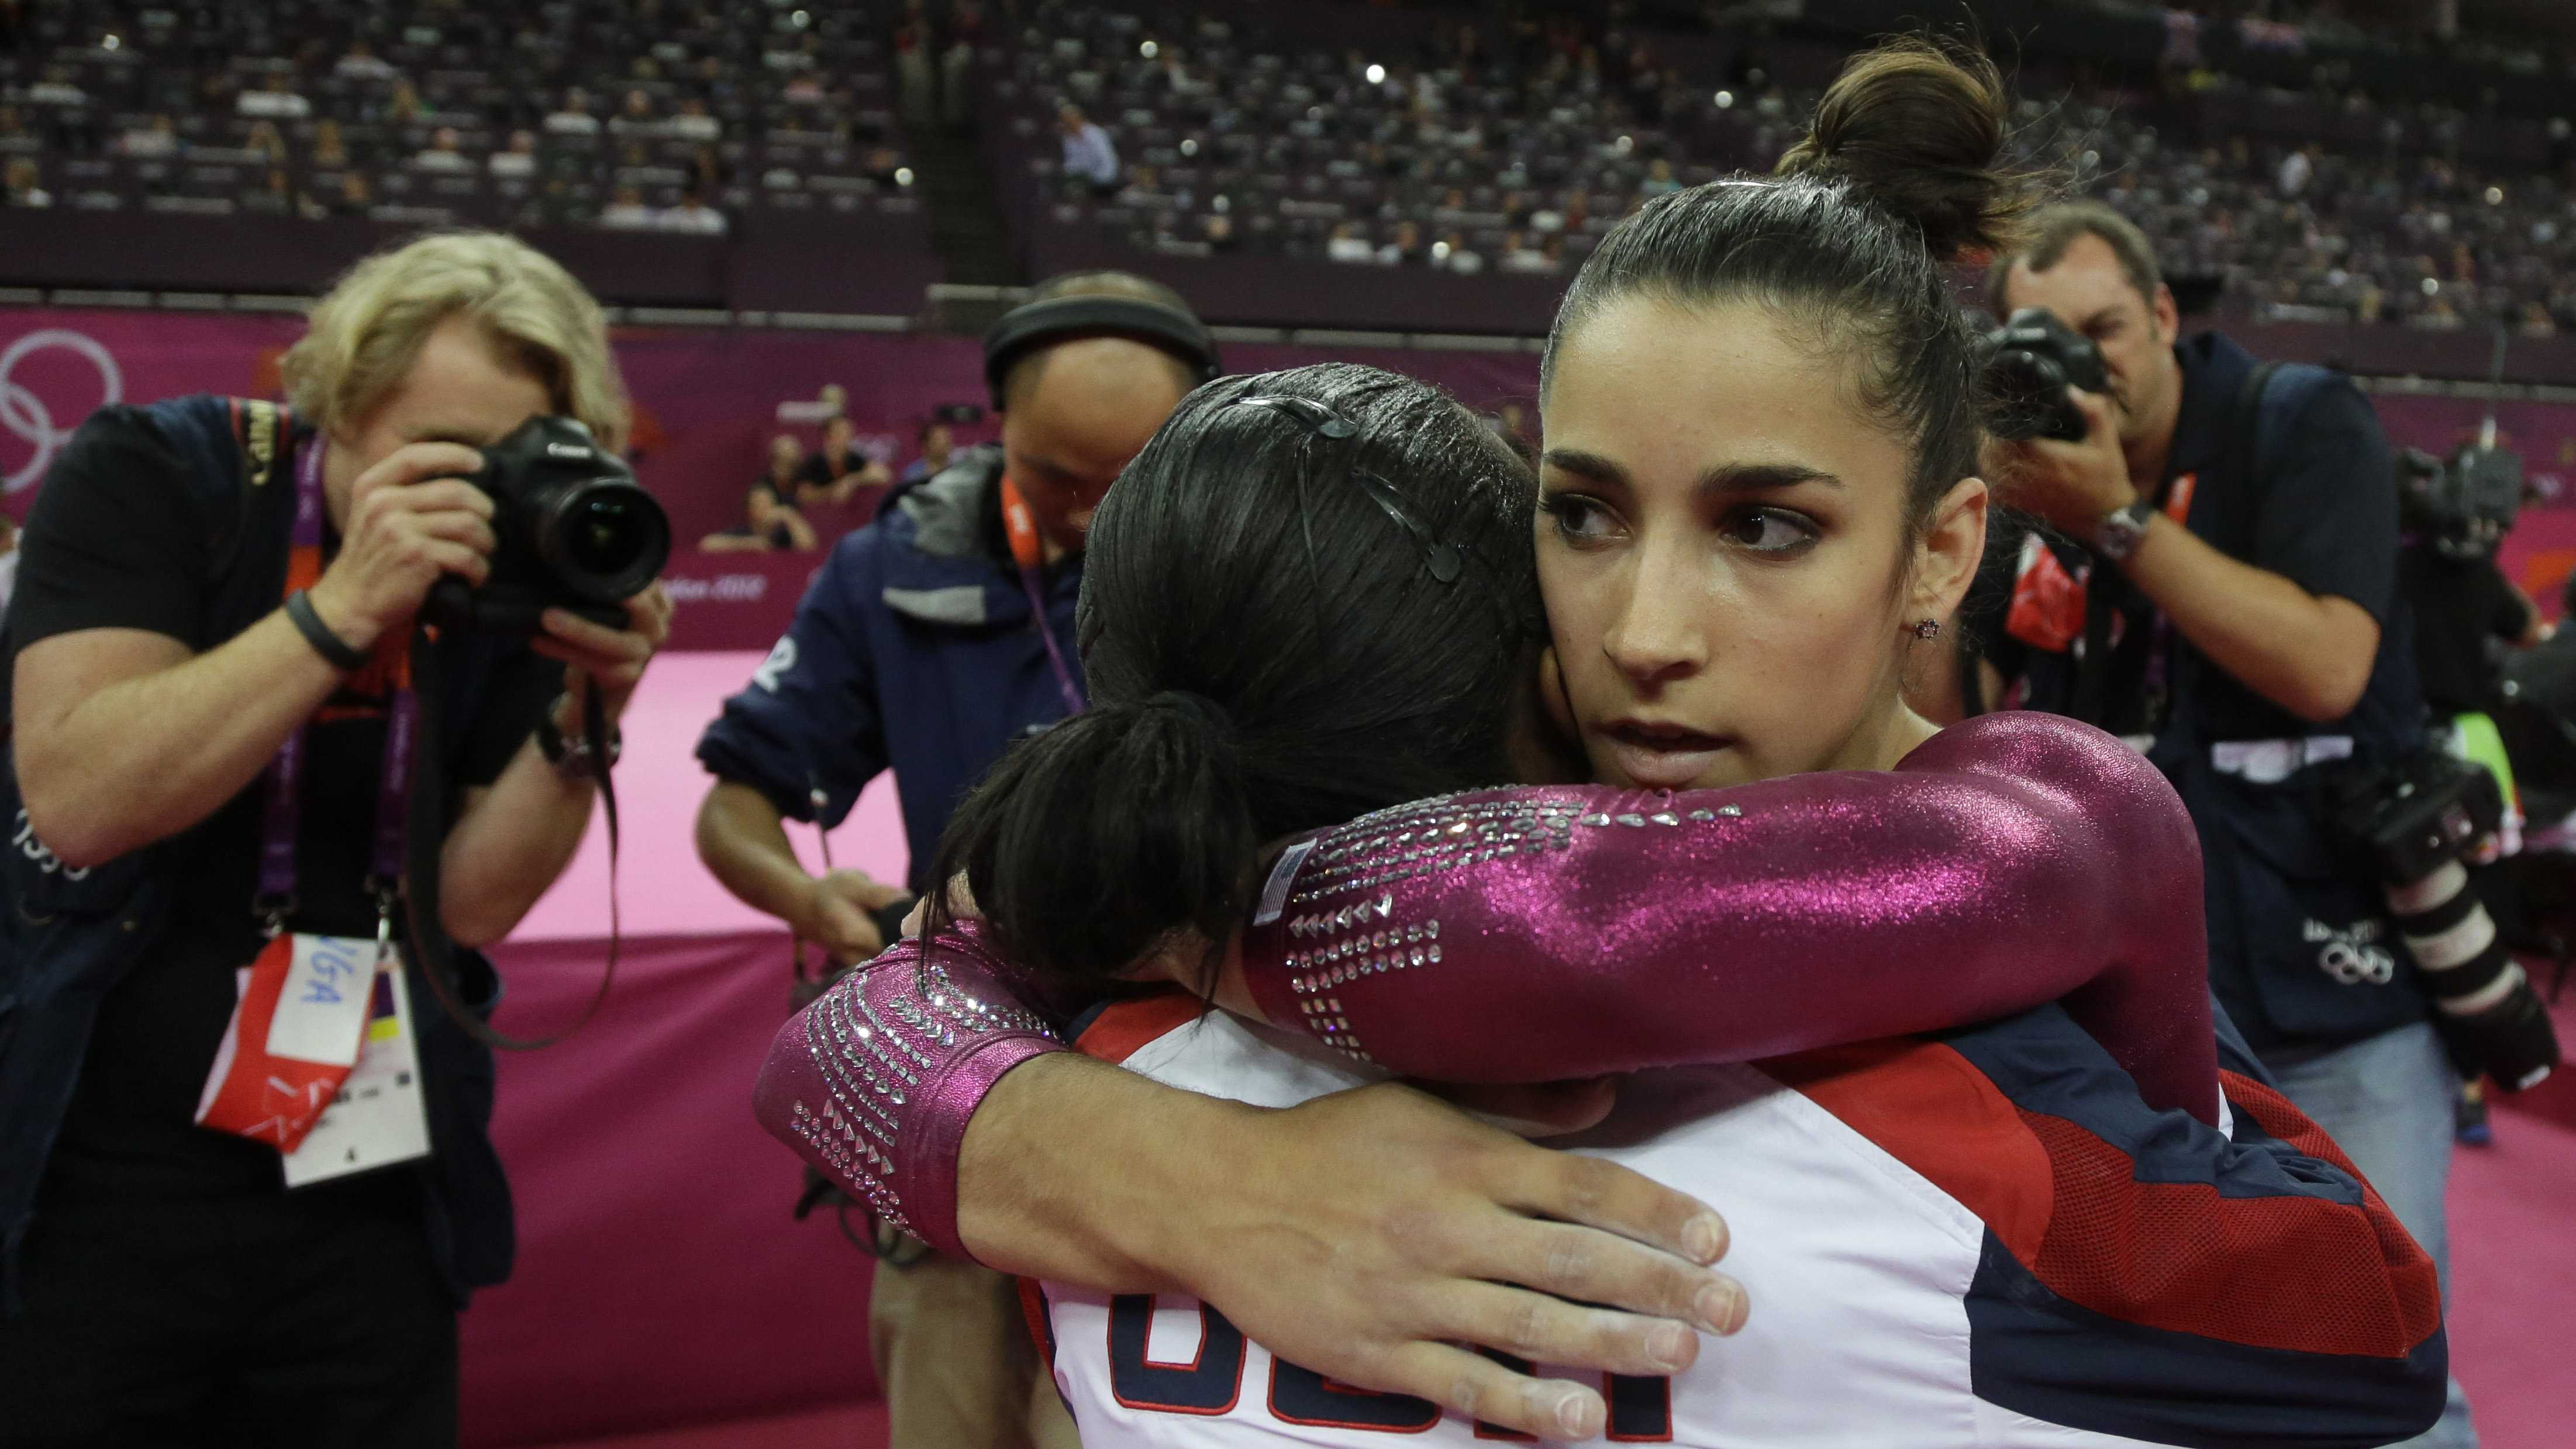 U.S. gymnast Gabrielle Douglas, left, hugs teammate Alexandra Raisman after the latter's performance on the floor during the artistic gymnastics women's individual all-around competition at the 2012 Summer Olympics, Thursday, Aug. 2, 2012, in London.